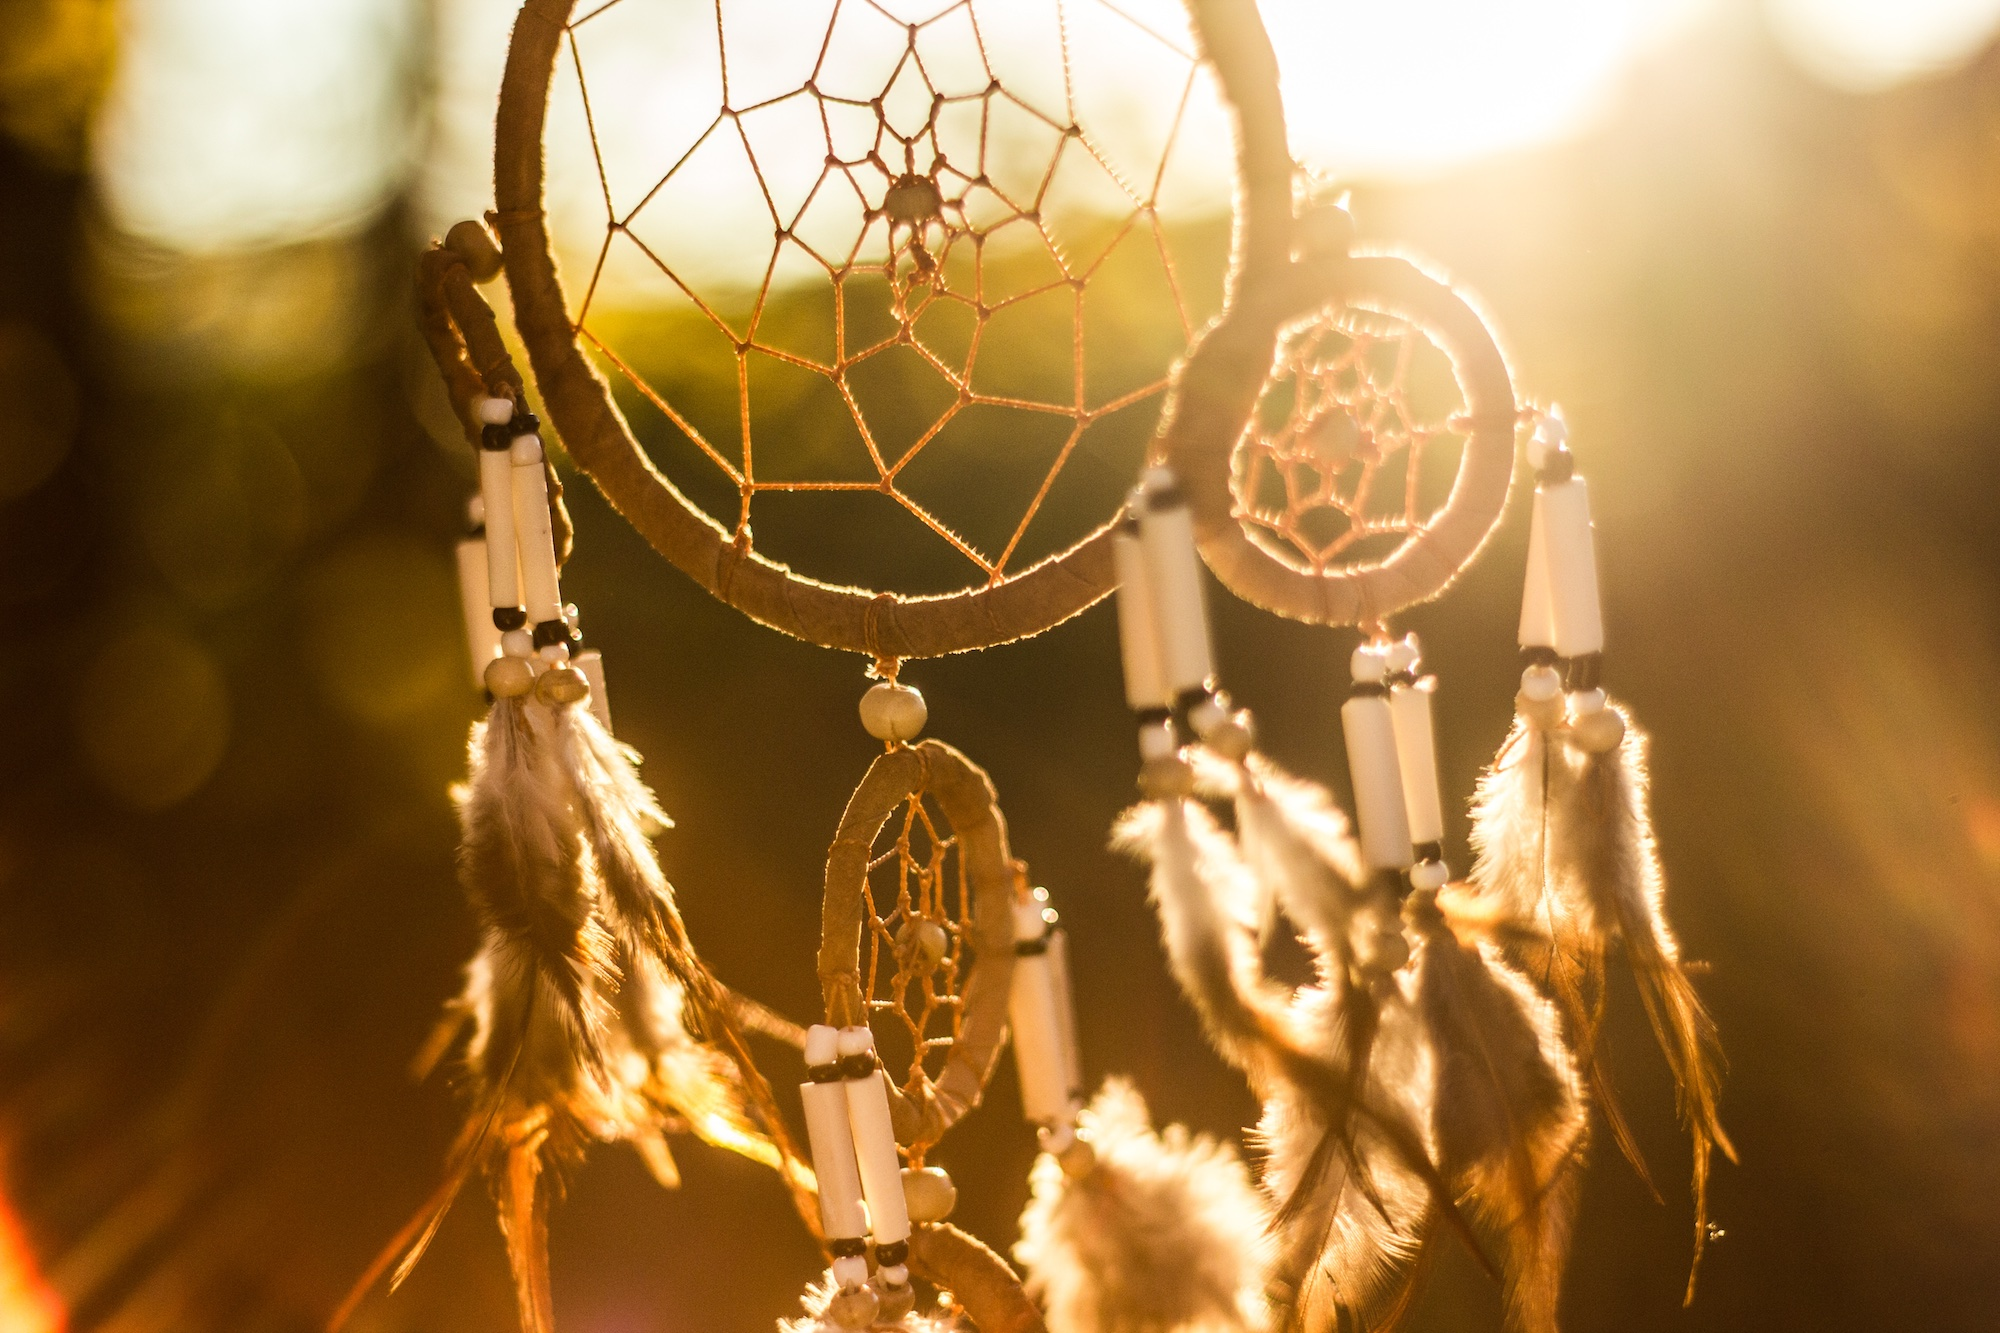 Dreamcatcher hanging outside in front of a bright sunset.